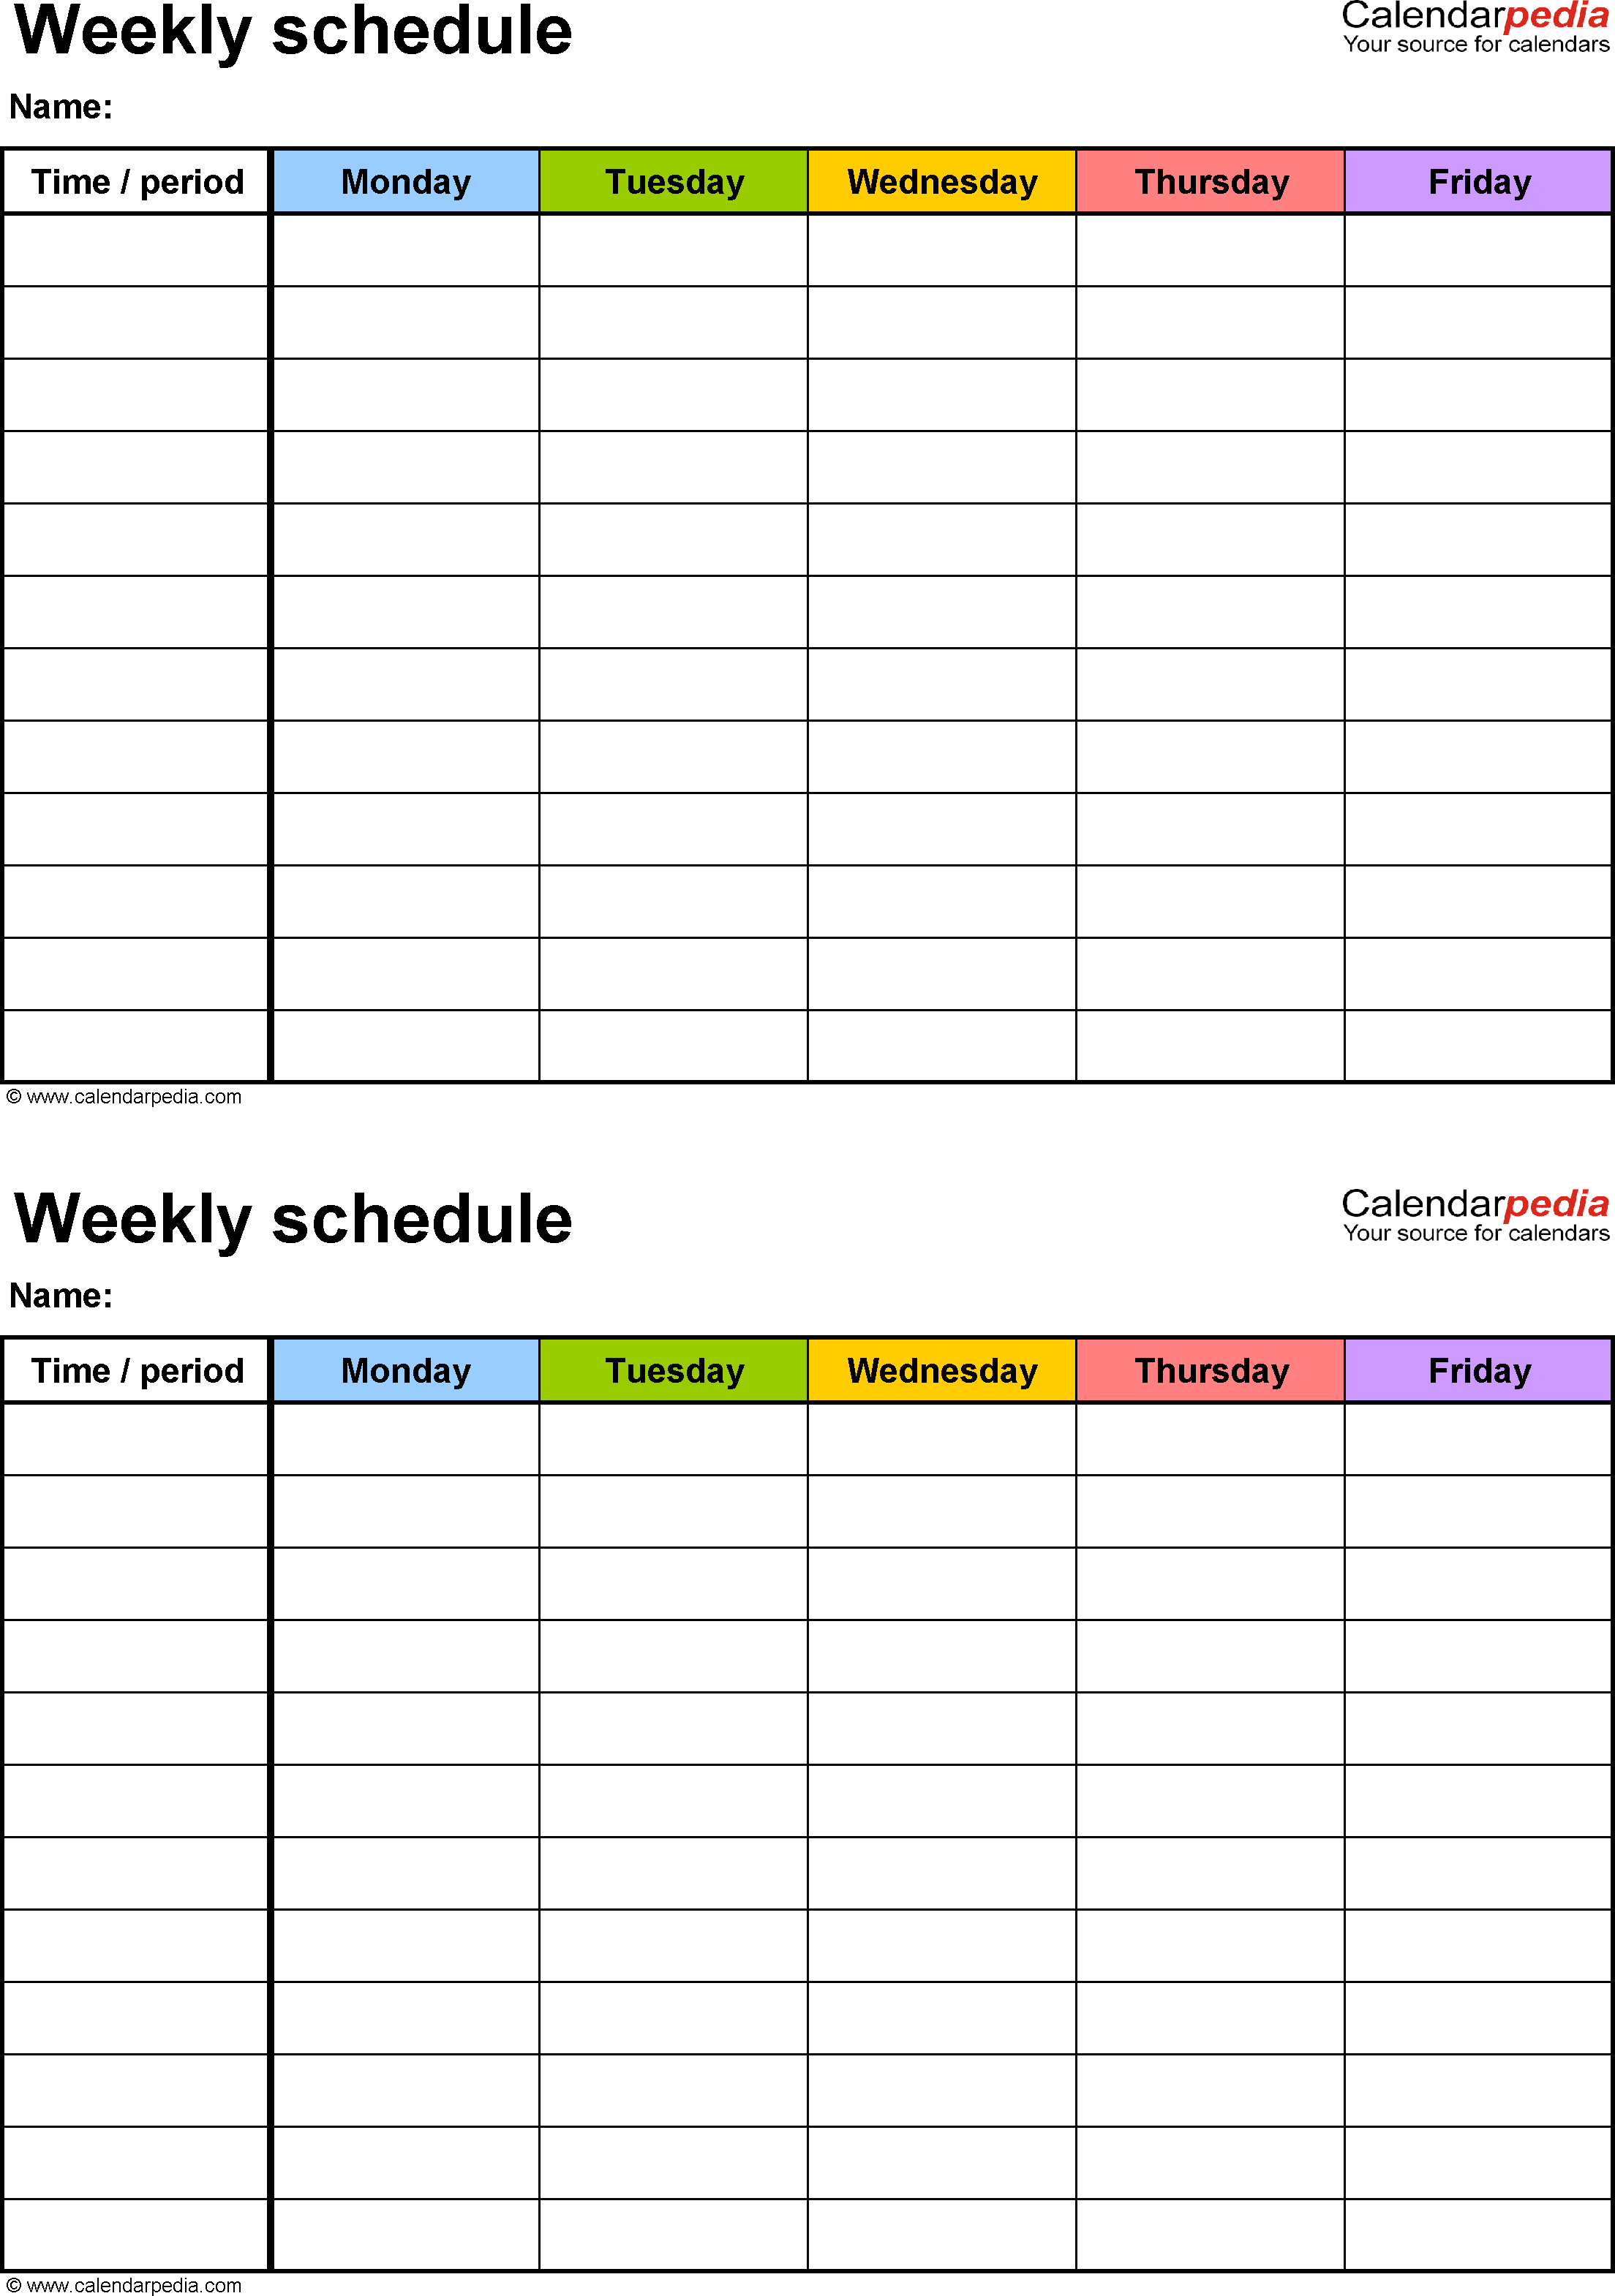 Weekly Schedule Template For PDF Version 3: 2 Schedules On One Page,  Portrait,  Daily Weekly Schedule Template